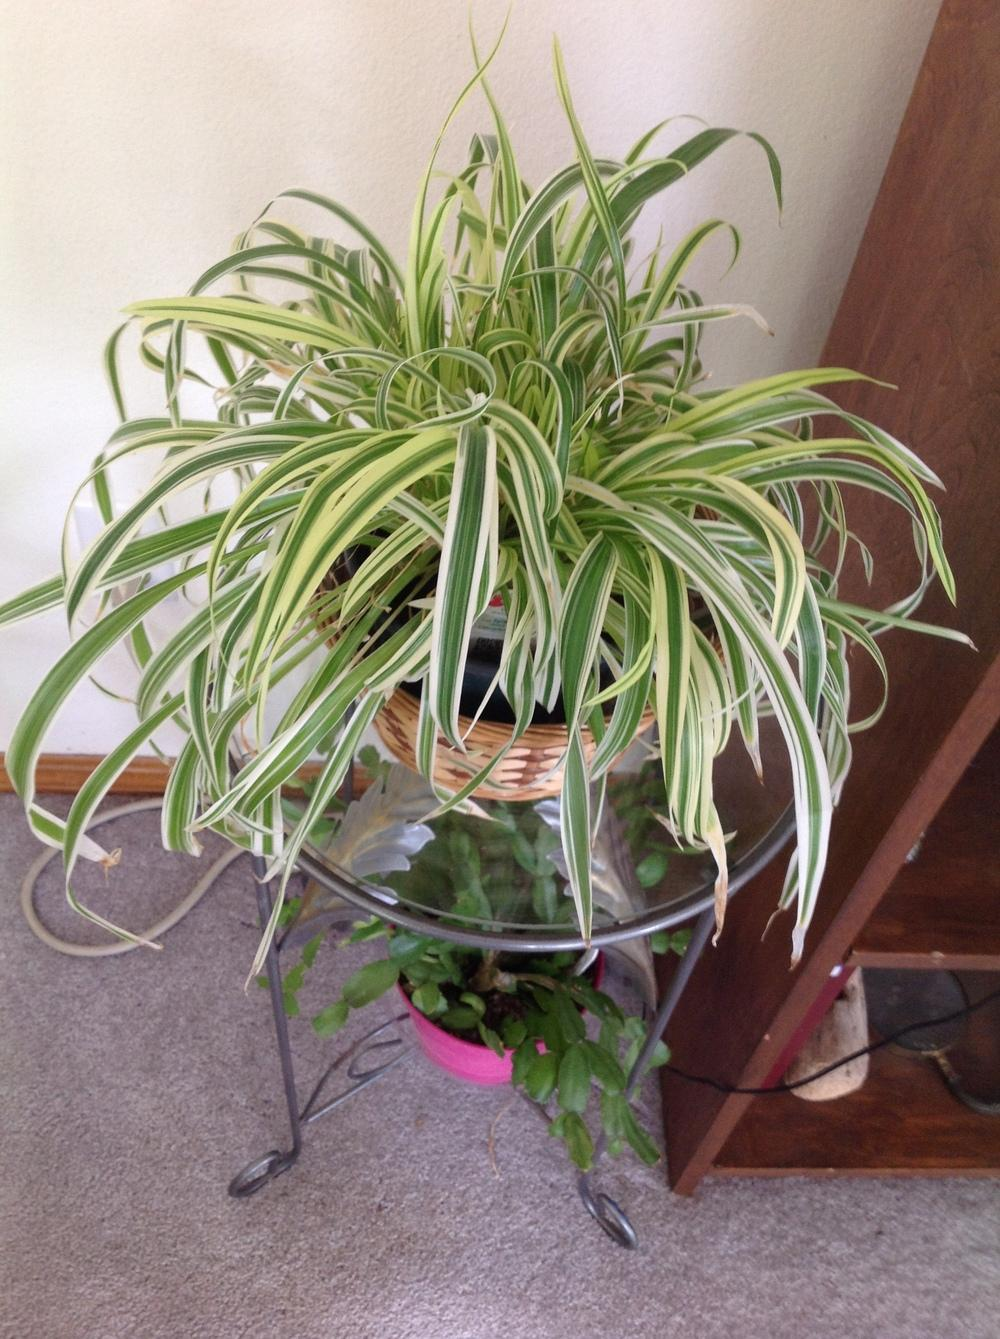 Houseplants Forum Growing Spider Plants From Babies With No Roots Garden Org